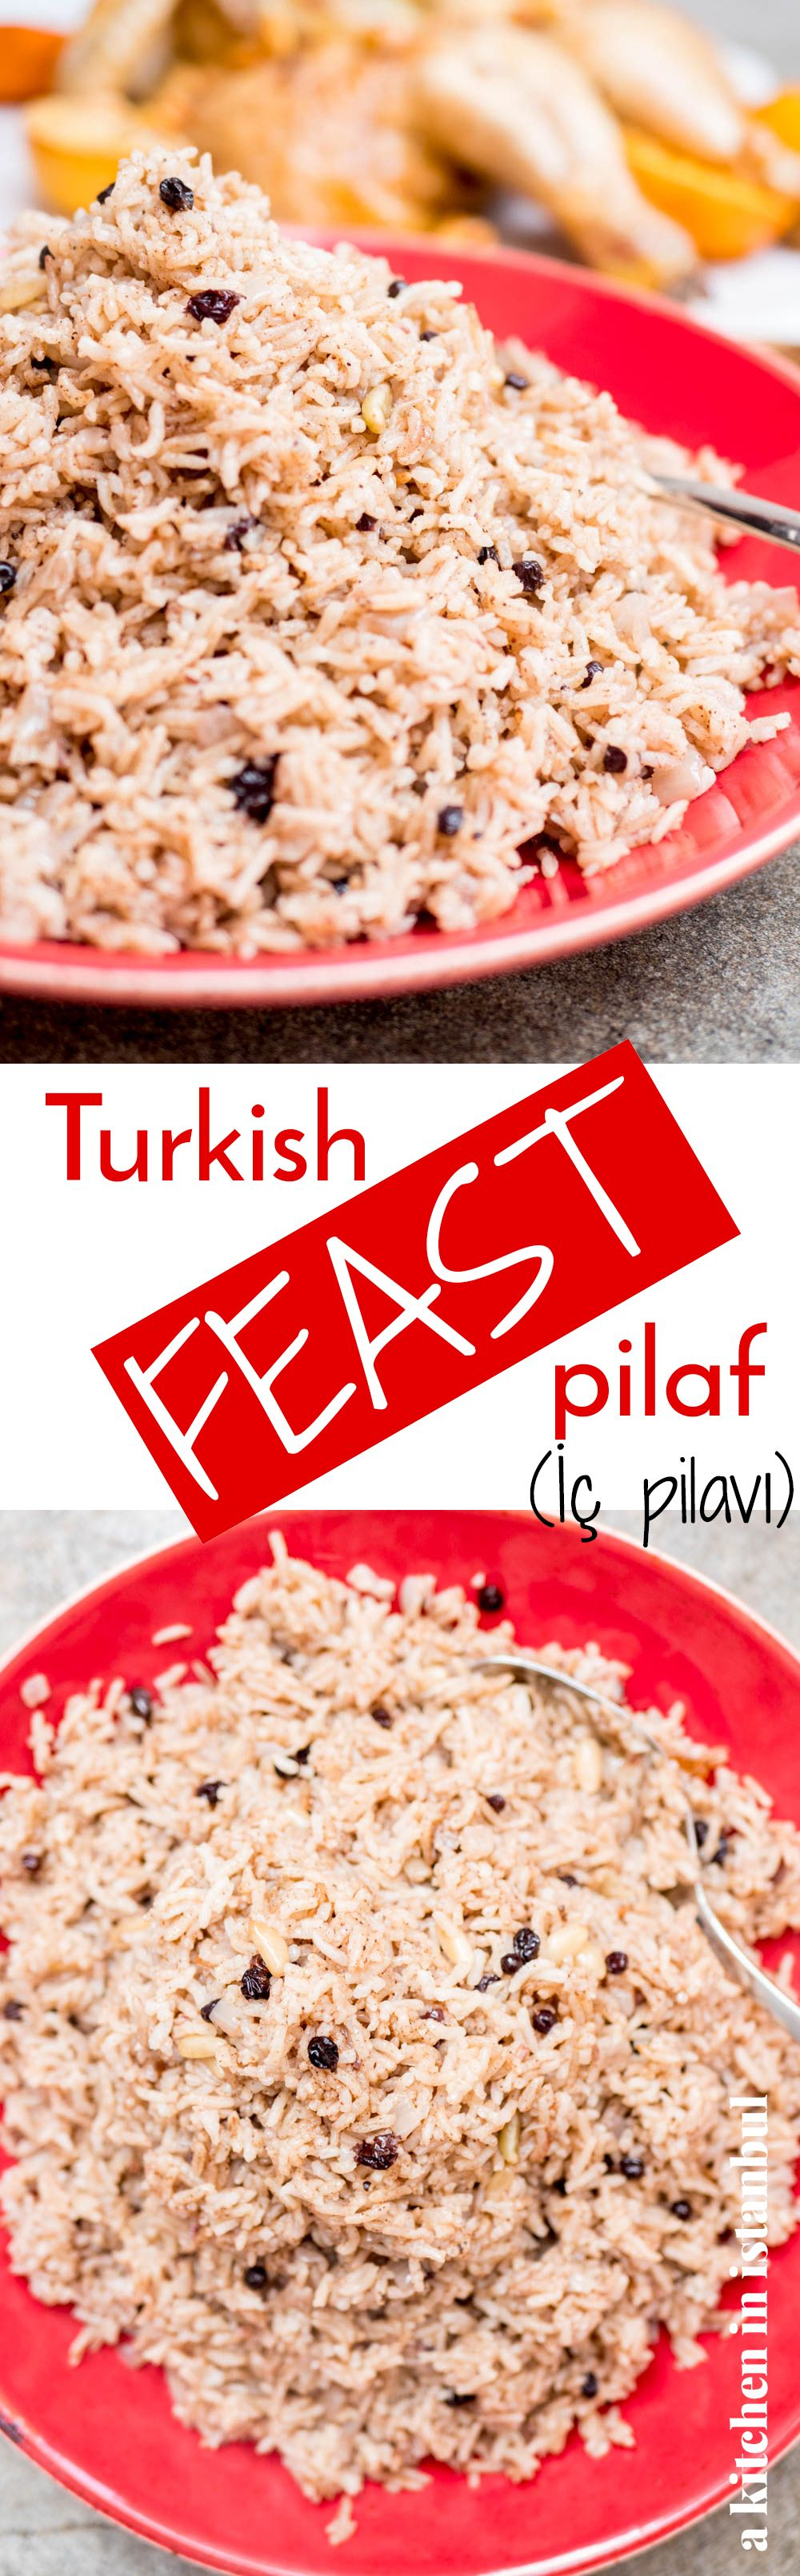 Turkish feast pilaf (İç pilavı) recipe / A kitchen in